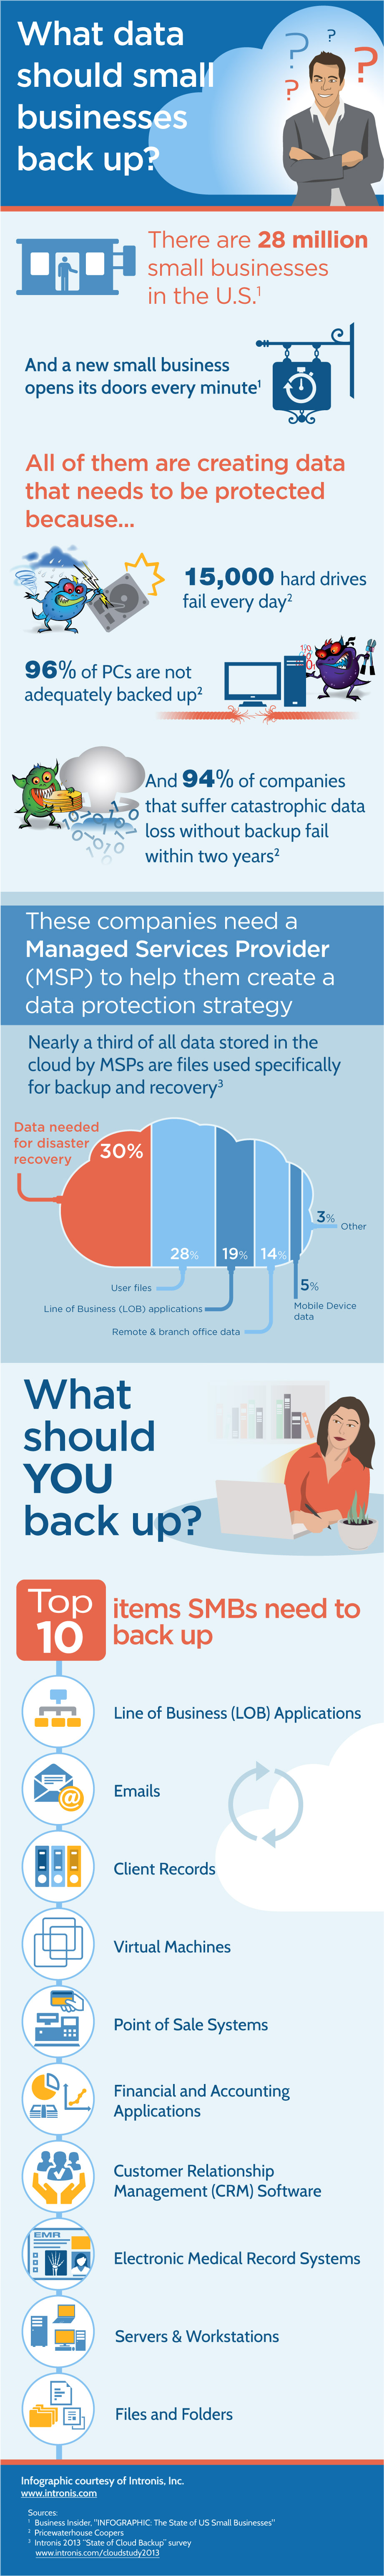 Cloud_WhatToBackup_Small_businesses